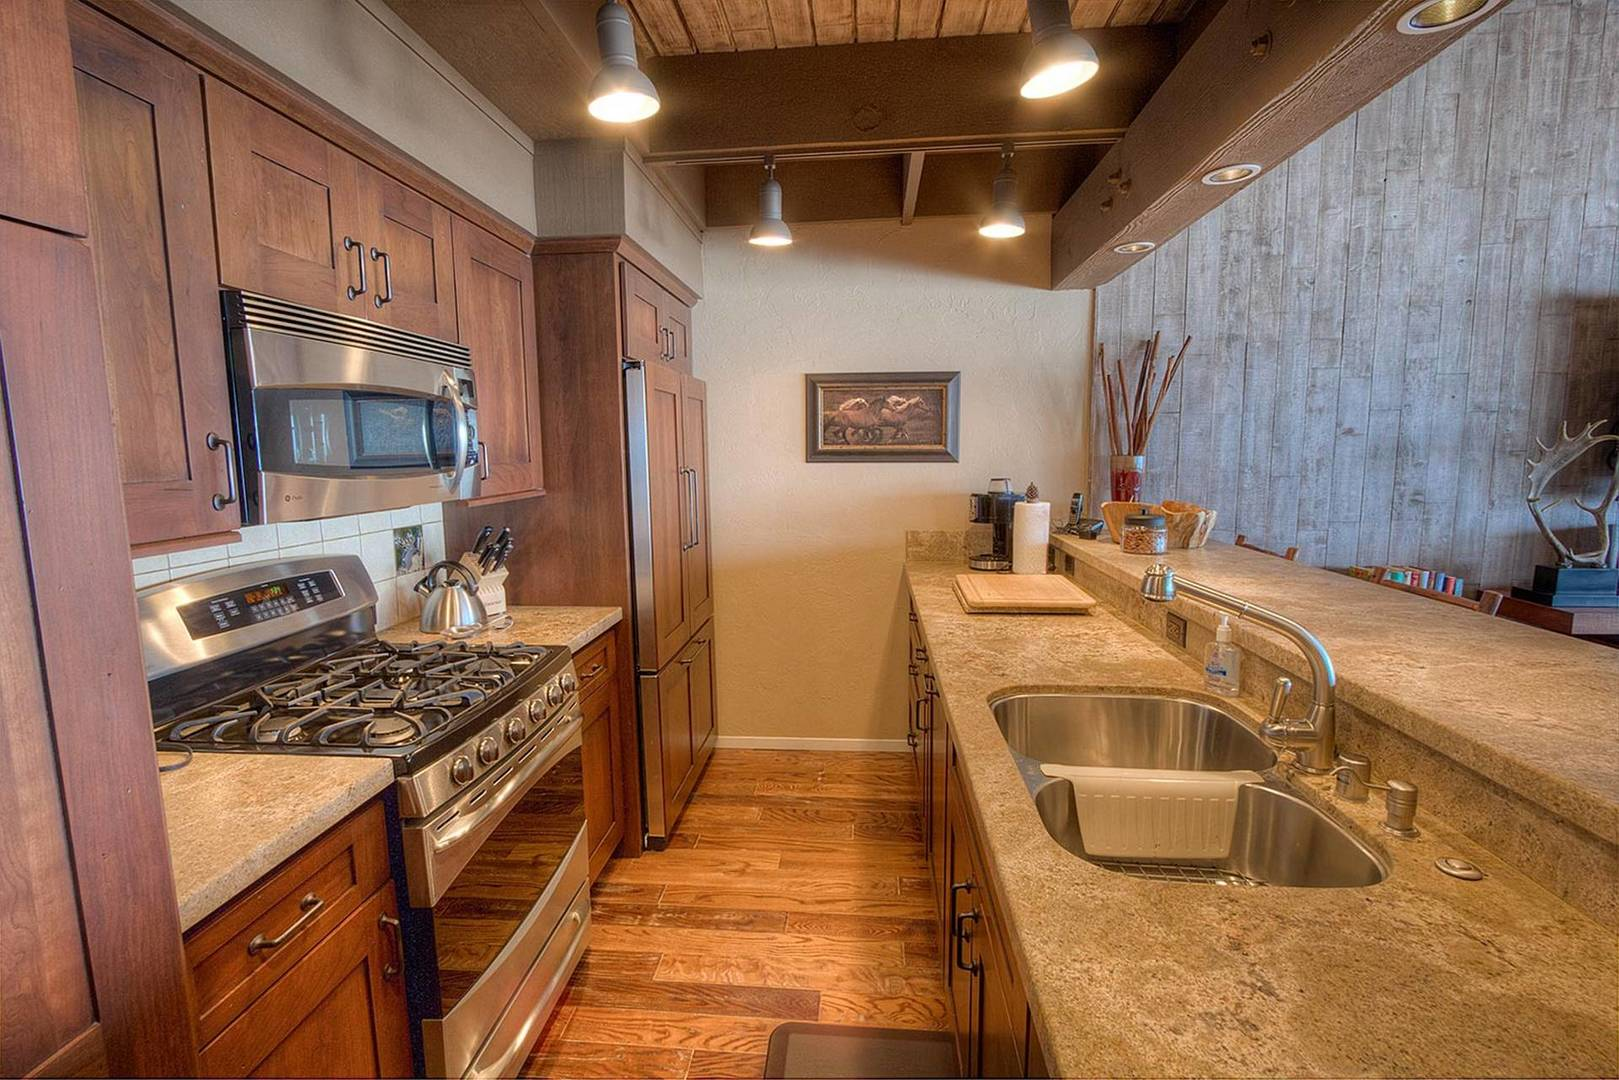 llc1240 kitchen